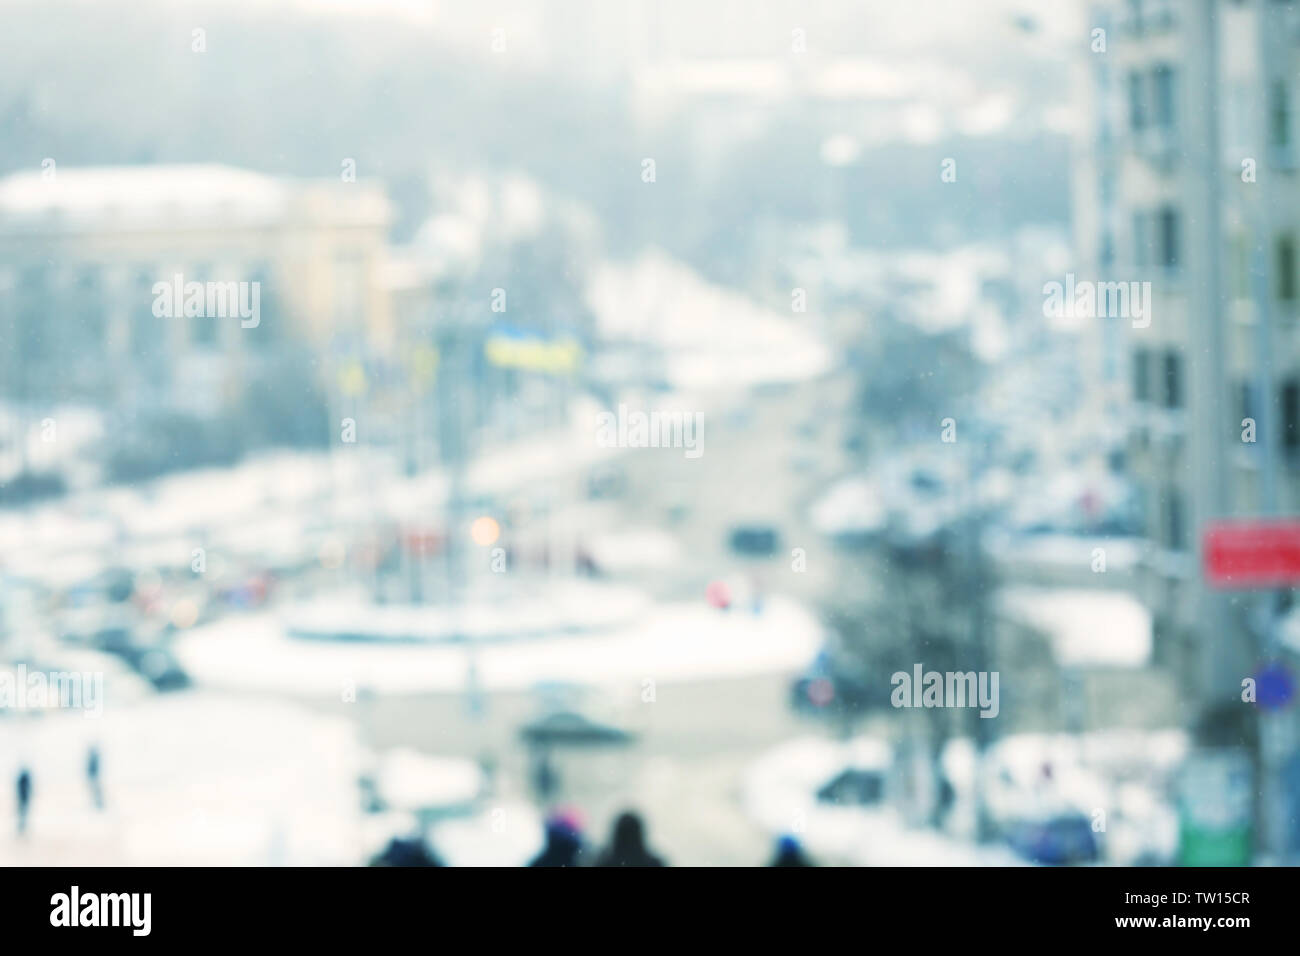 Blurred view of big city square - Stock Image